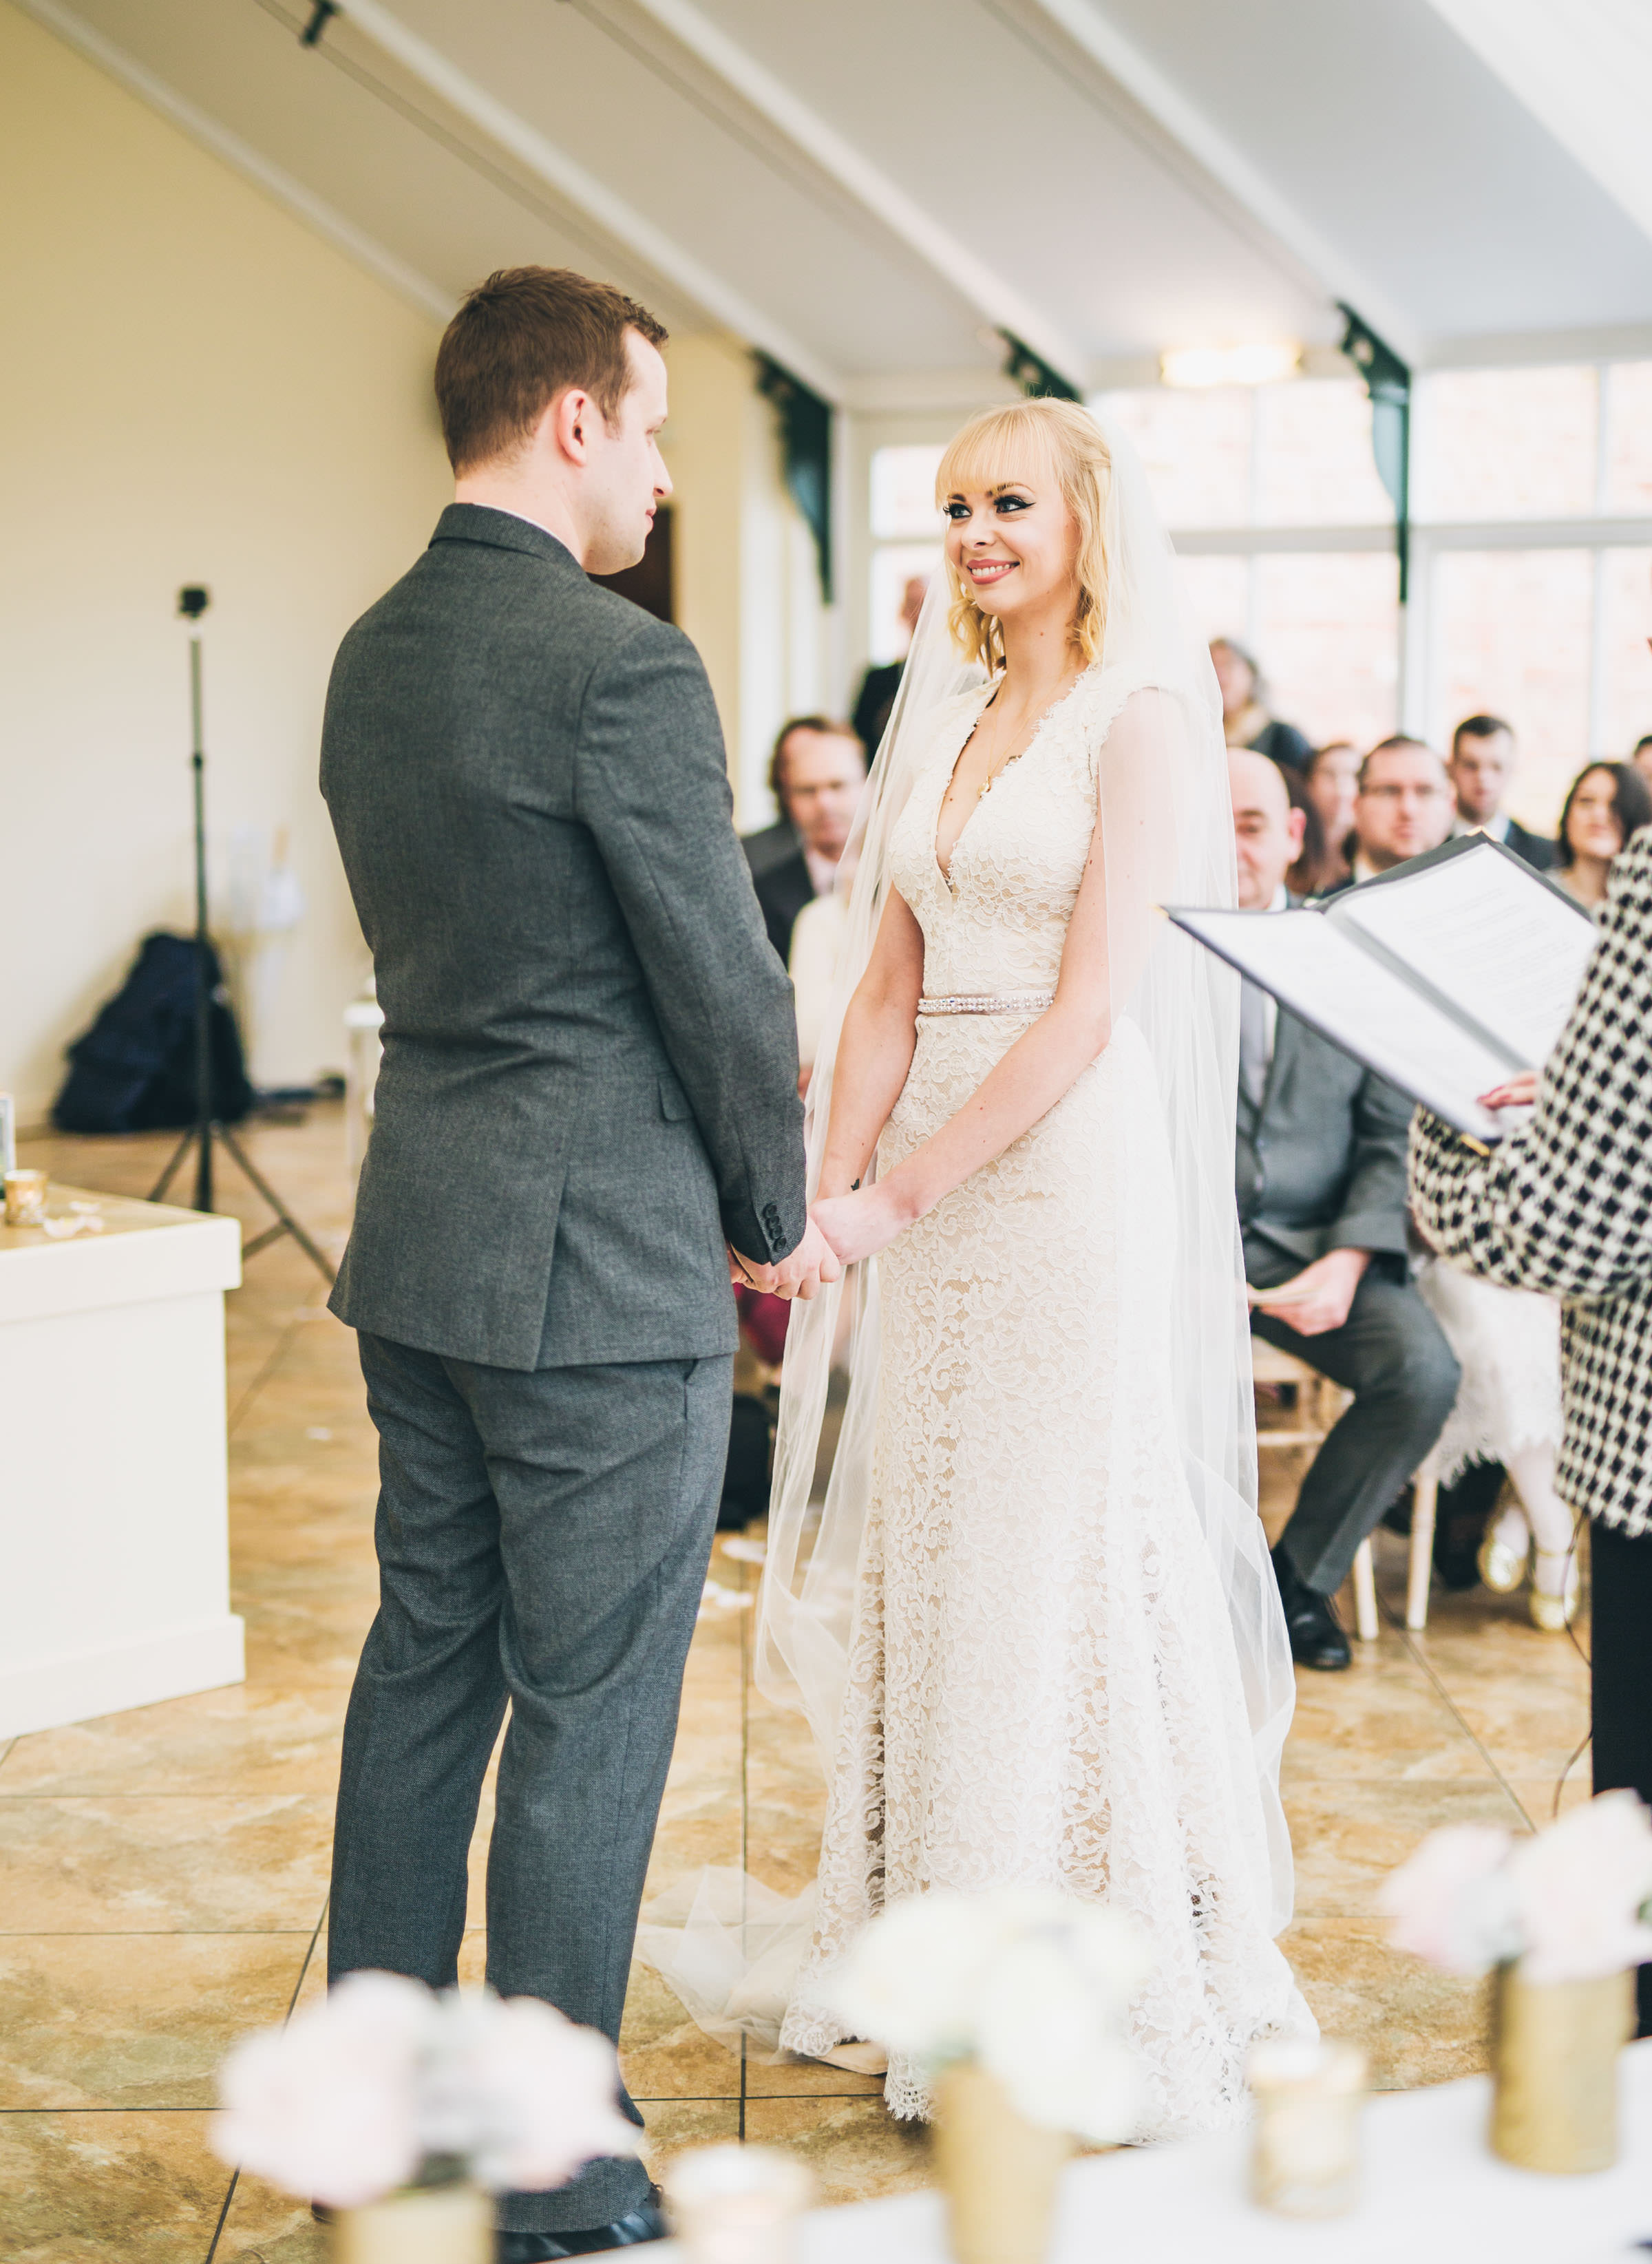 vow exchange at Combermere Abbey Shropshire